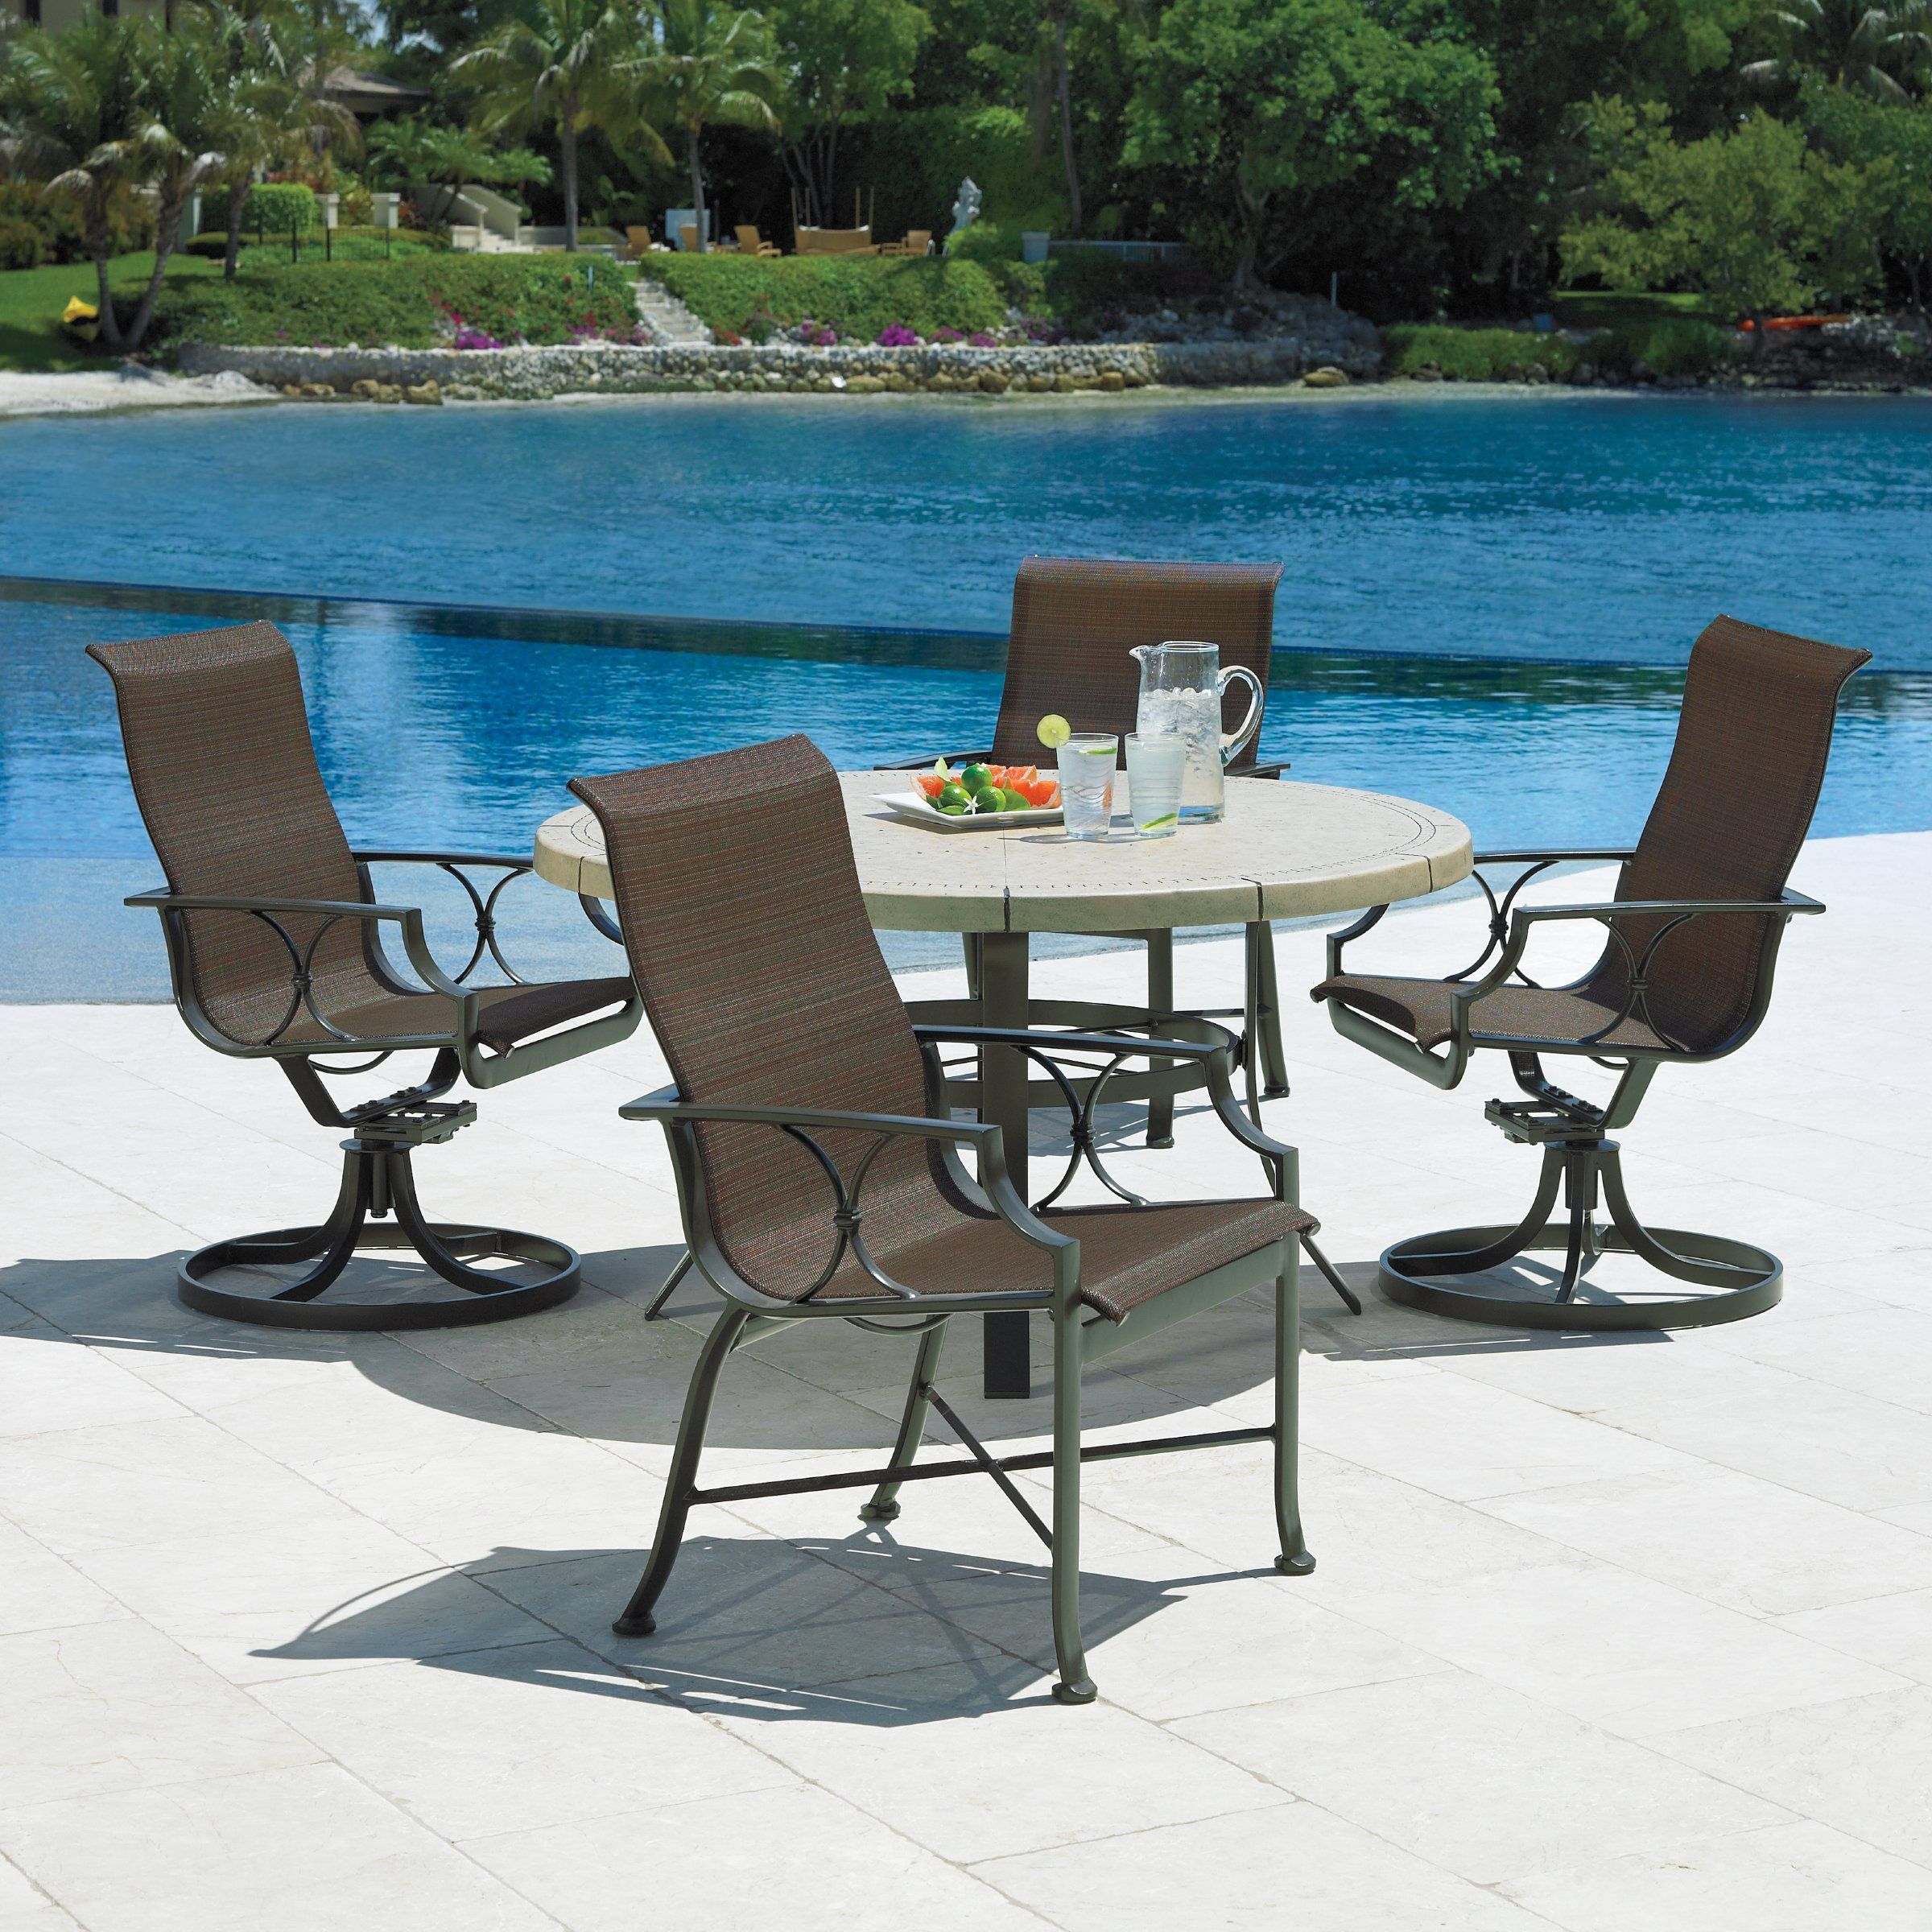 Winston Exeter Sling Collection Round Patio Dining Set From Hayneedle Deck Furniture